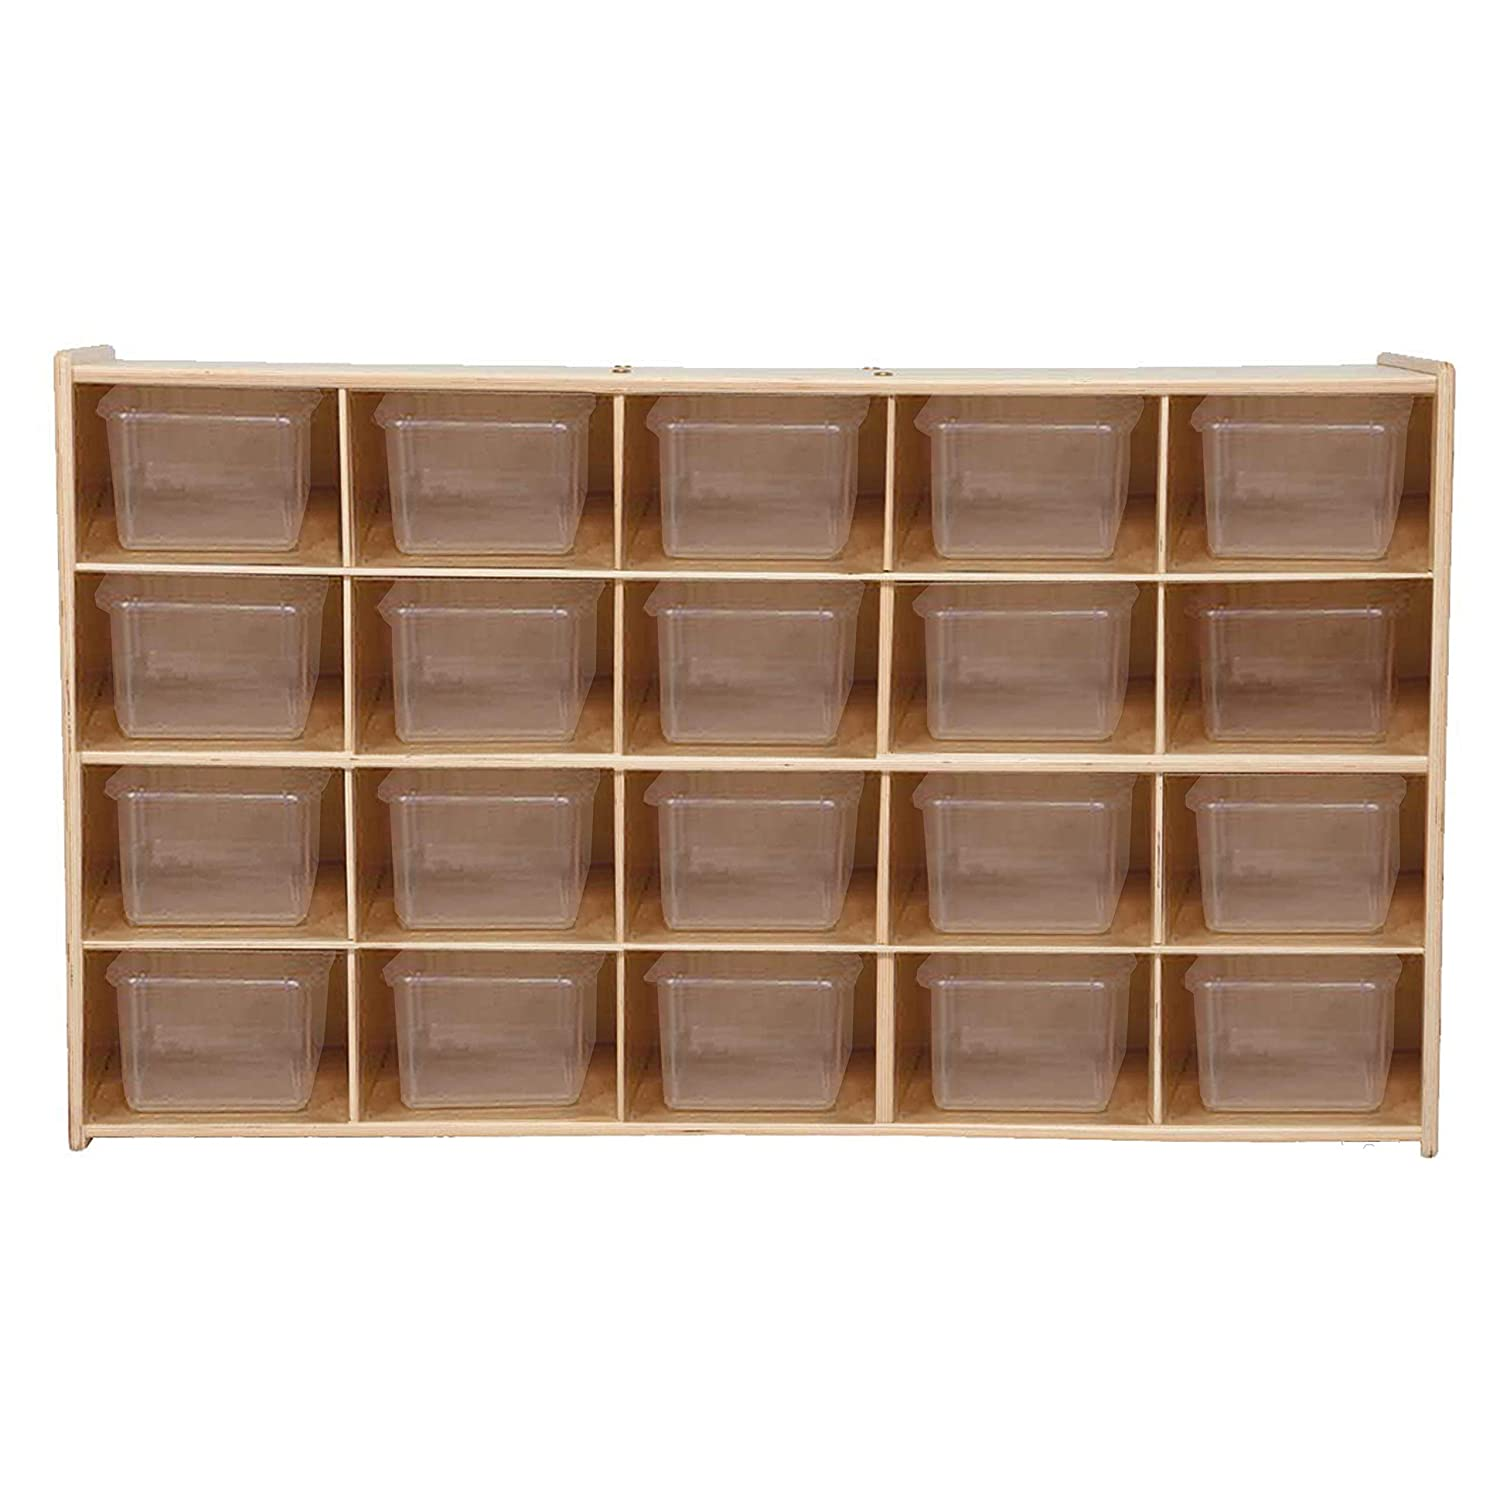 Image of Contender 20 Tray Storage with Translucent Trays - RTA Cubbies